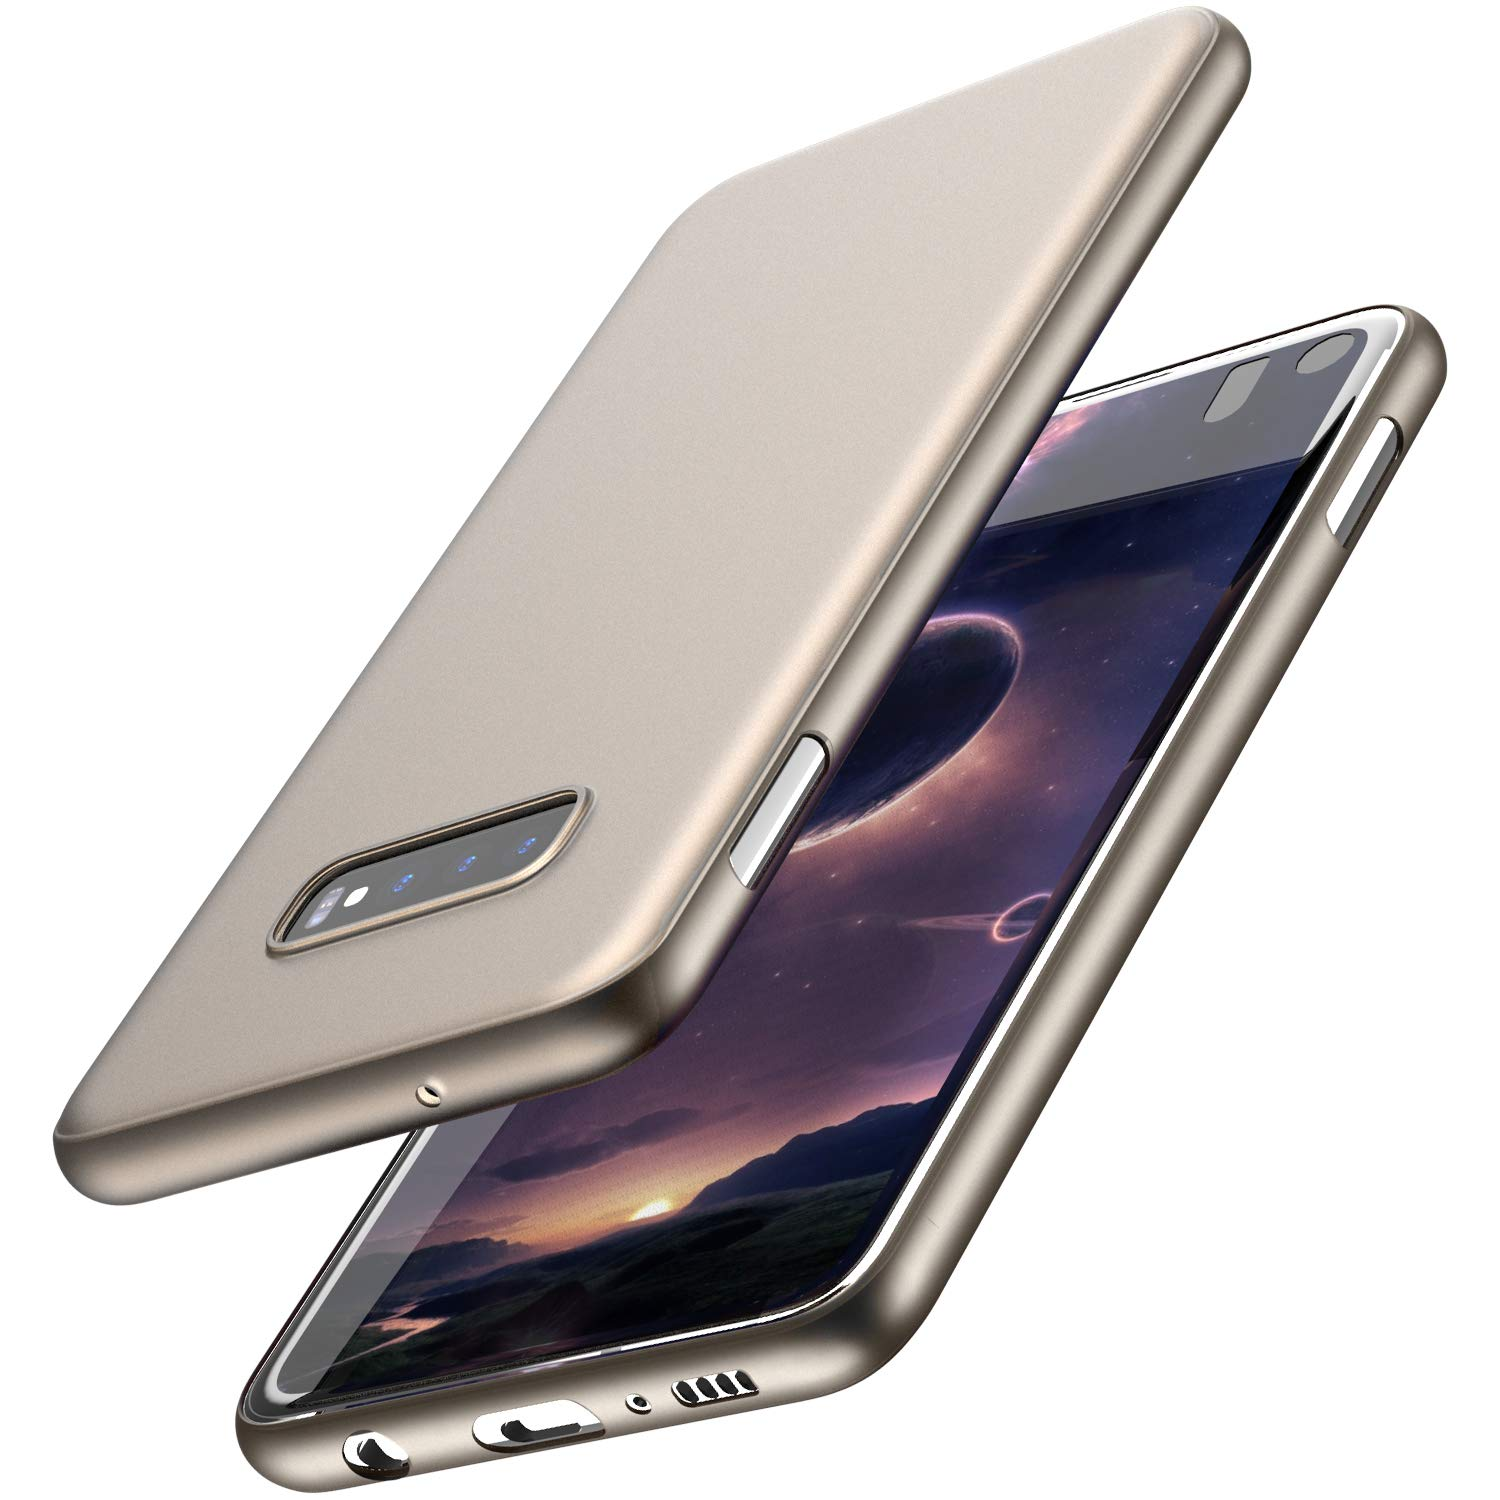 TOZO for Samsung Galaxy S10e Case 5.8 Inch (2019) Ultra-Thin Hard Cover Slim Fit [0.35mm] World's Thinnest Protect Bumper for Samsung Galaxy S10e [ Semi-Transparent ] Lightweight